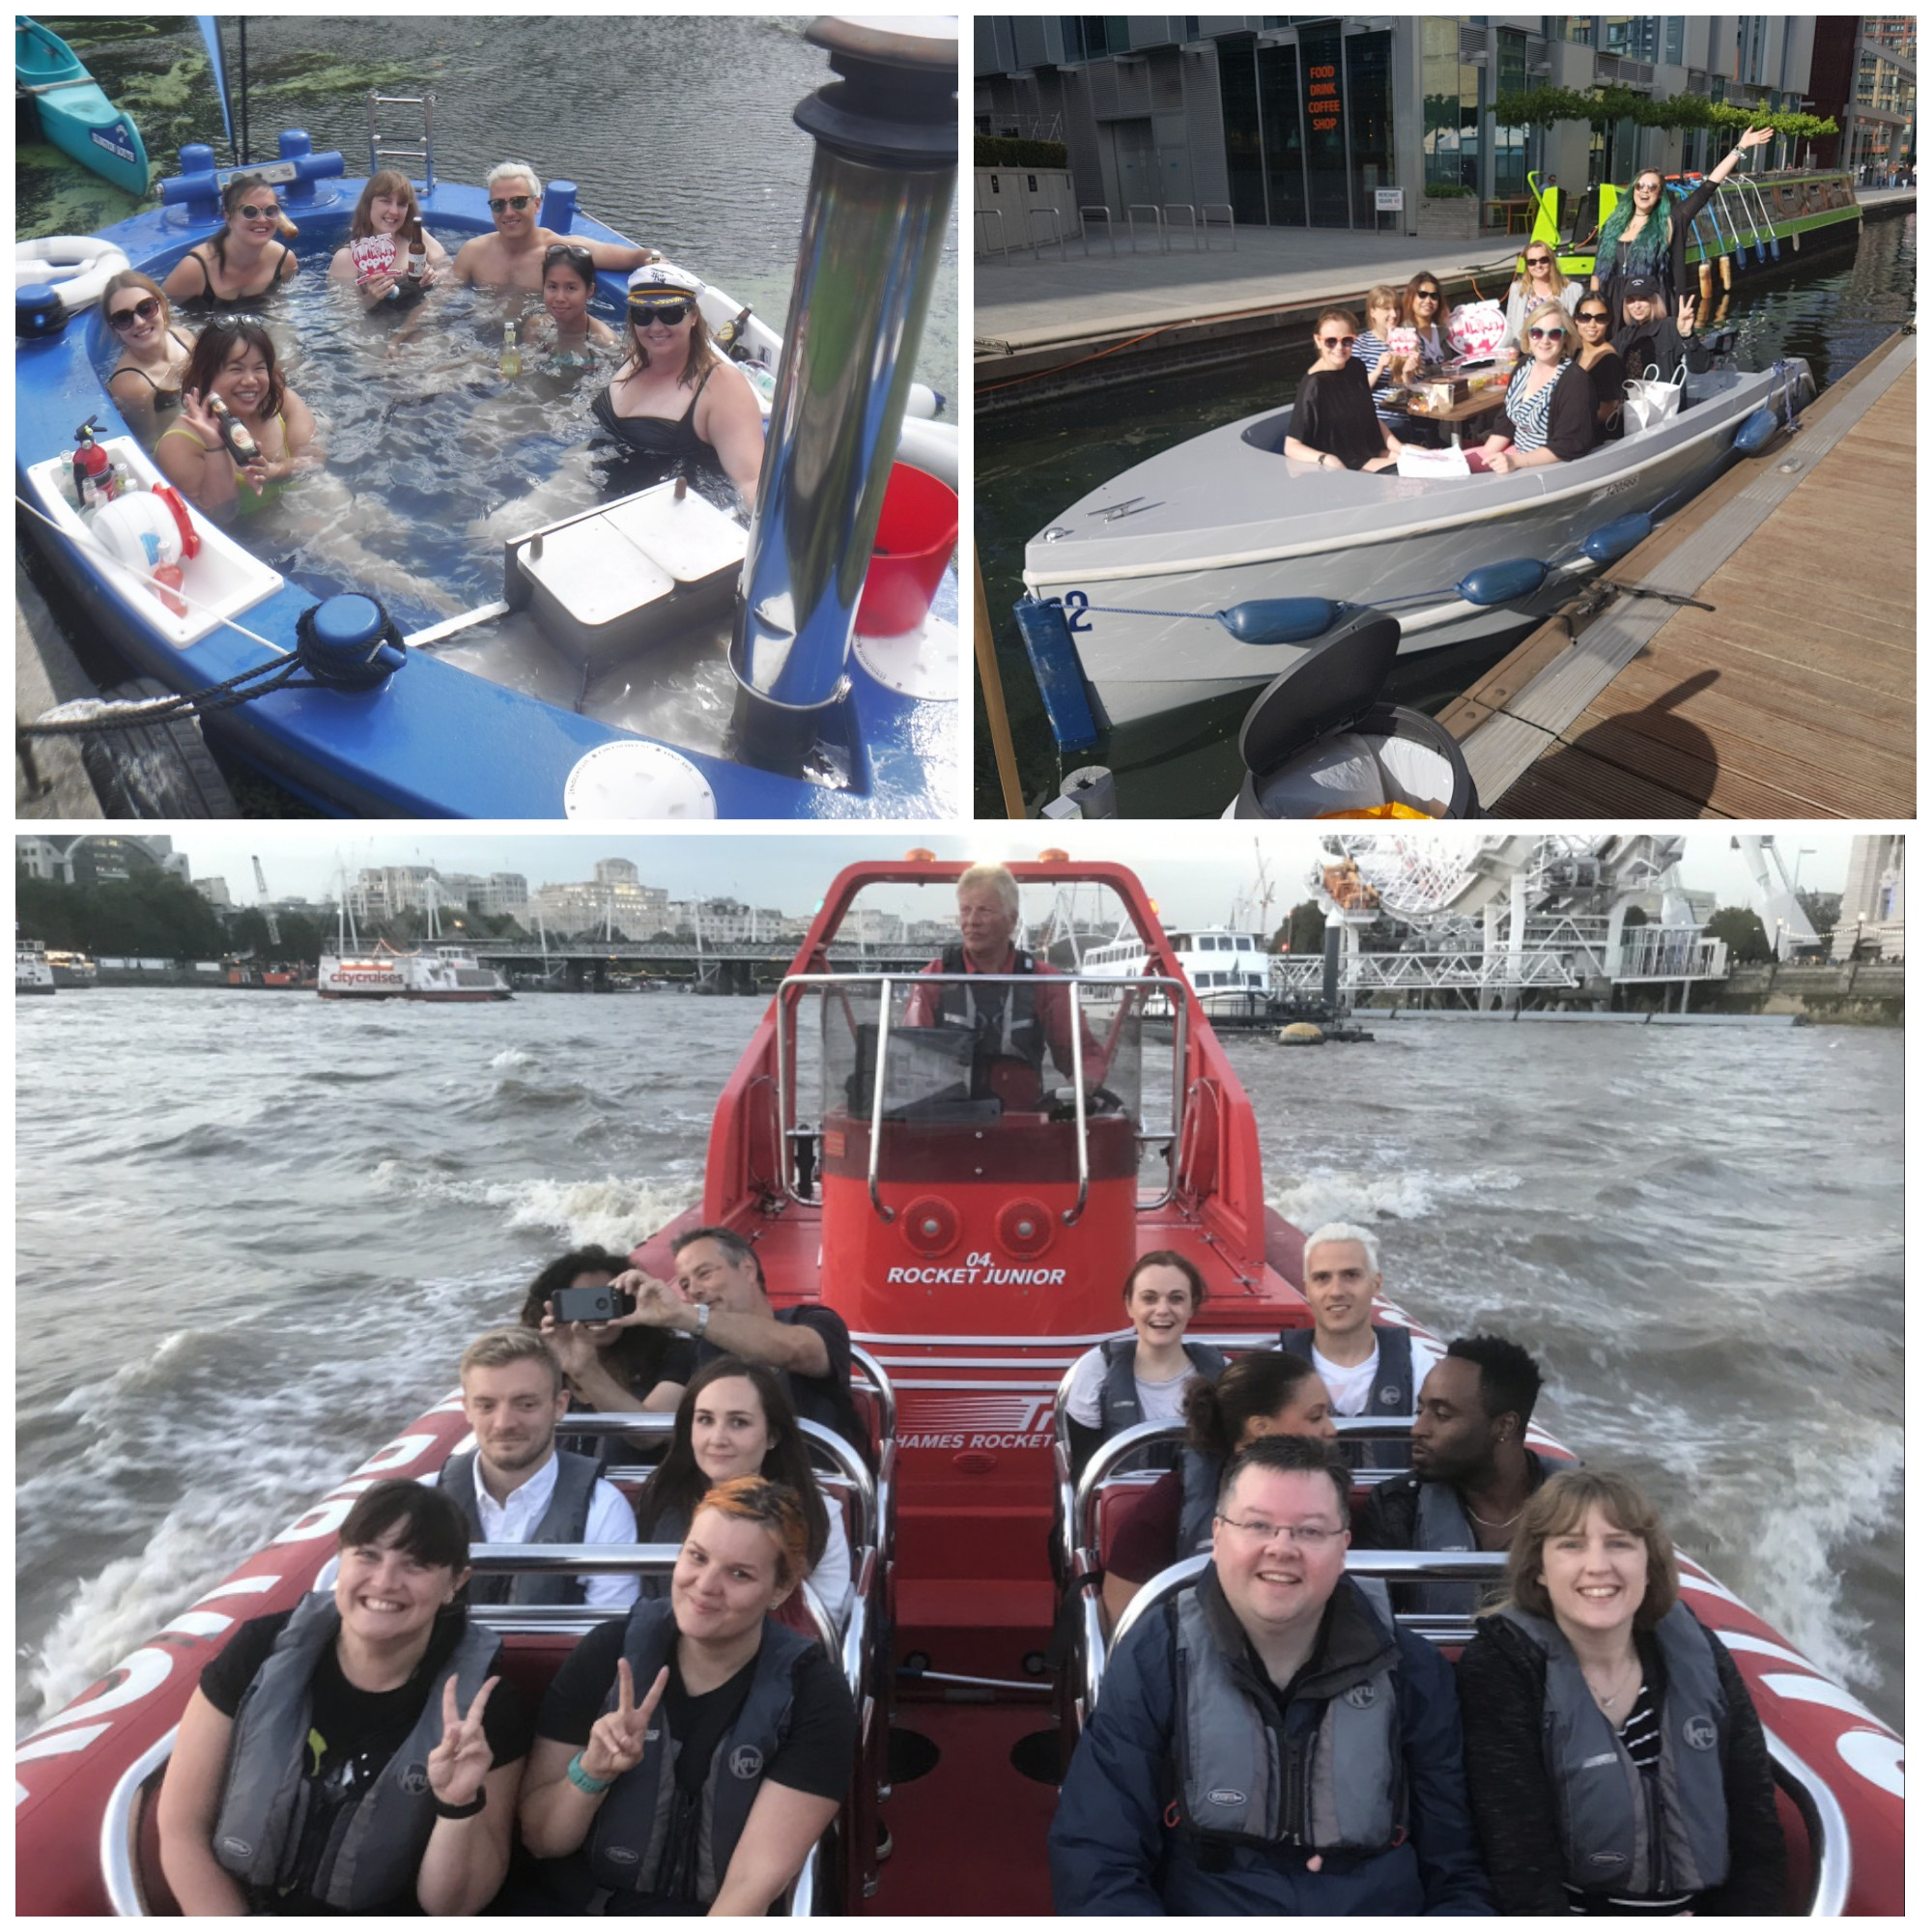 Hot Tug, GoBoat and Thames Rocket bloggers together